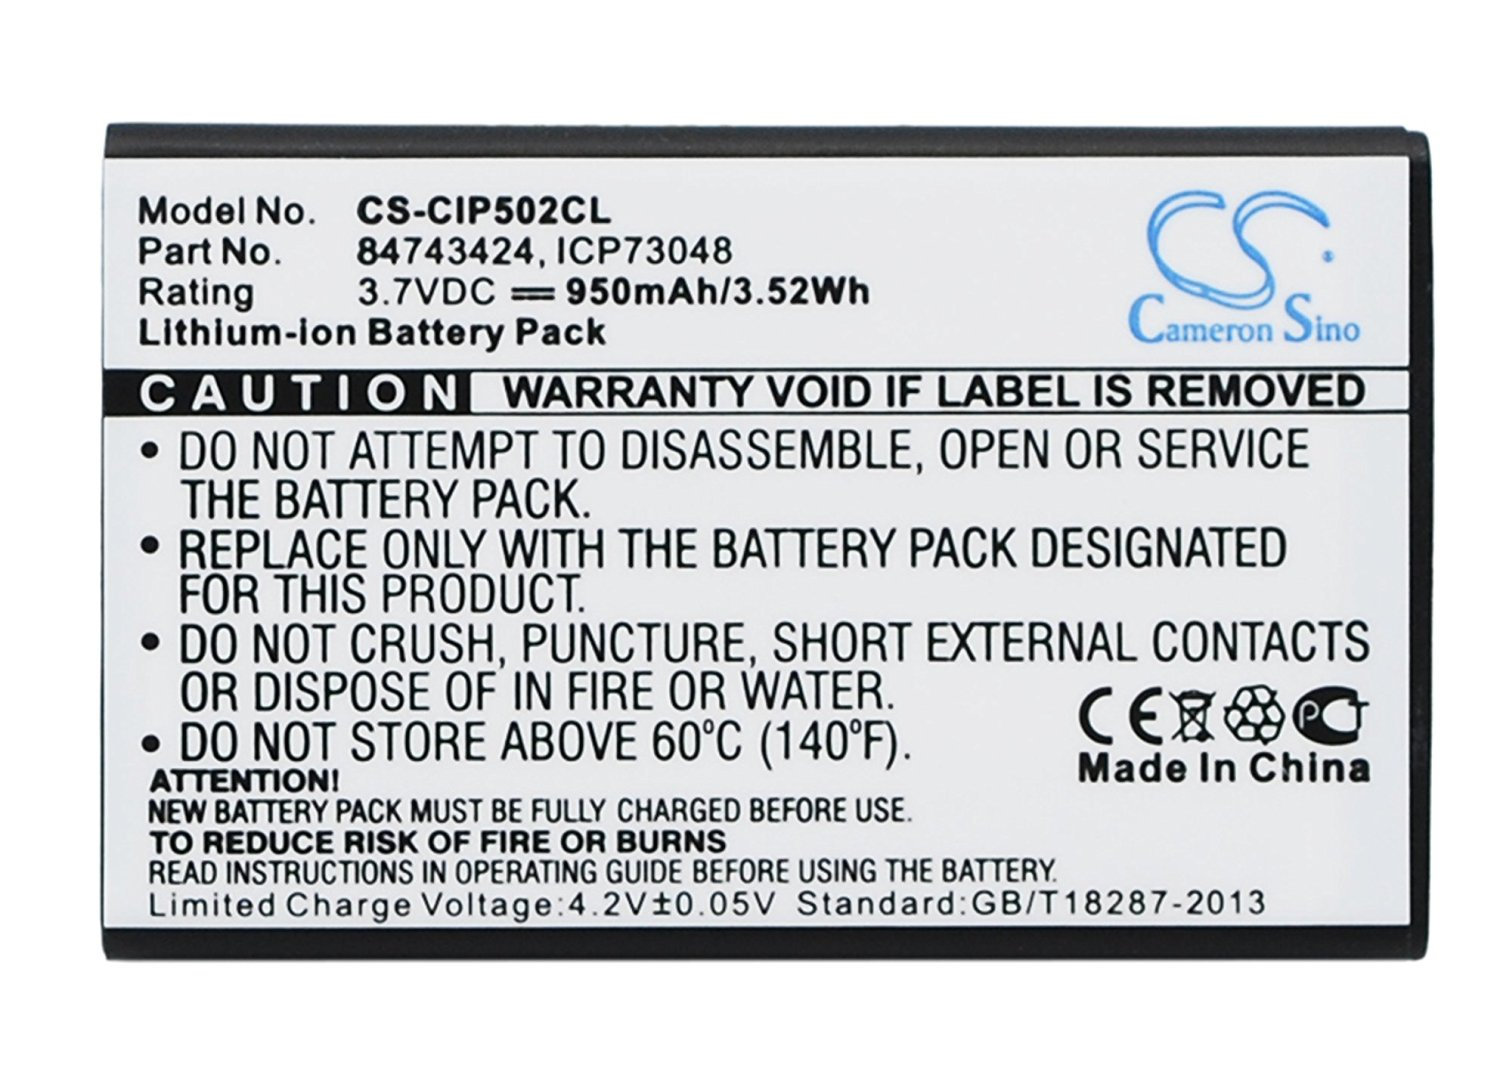 Spectralink Replacement Battery for 7520 / 7540